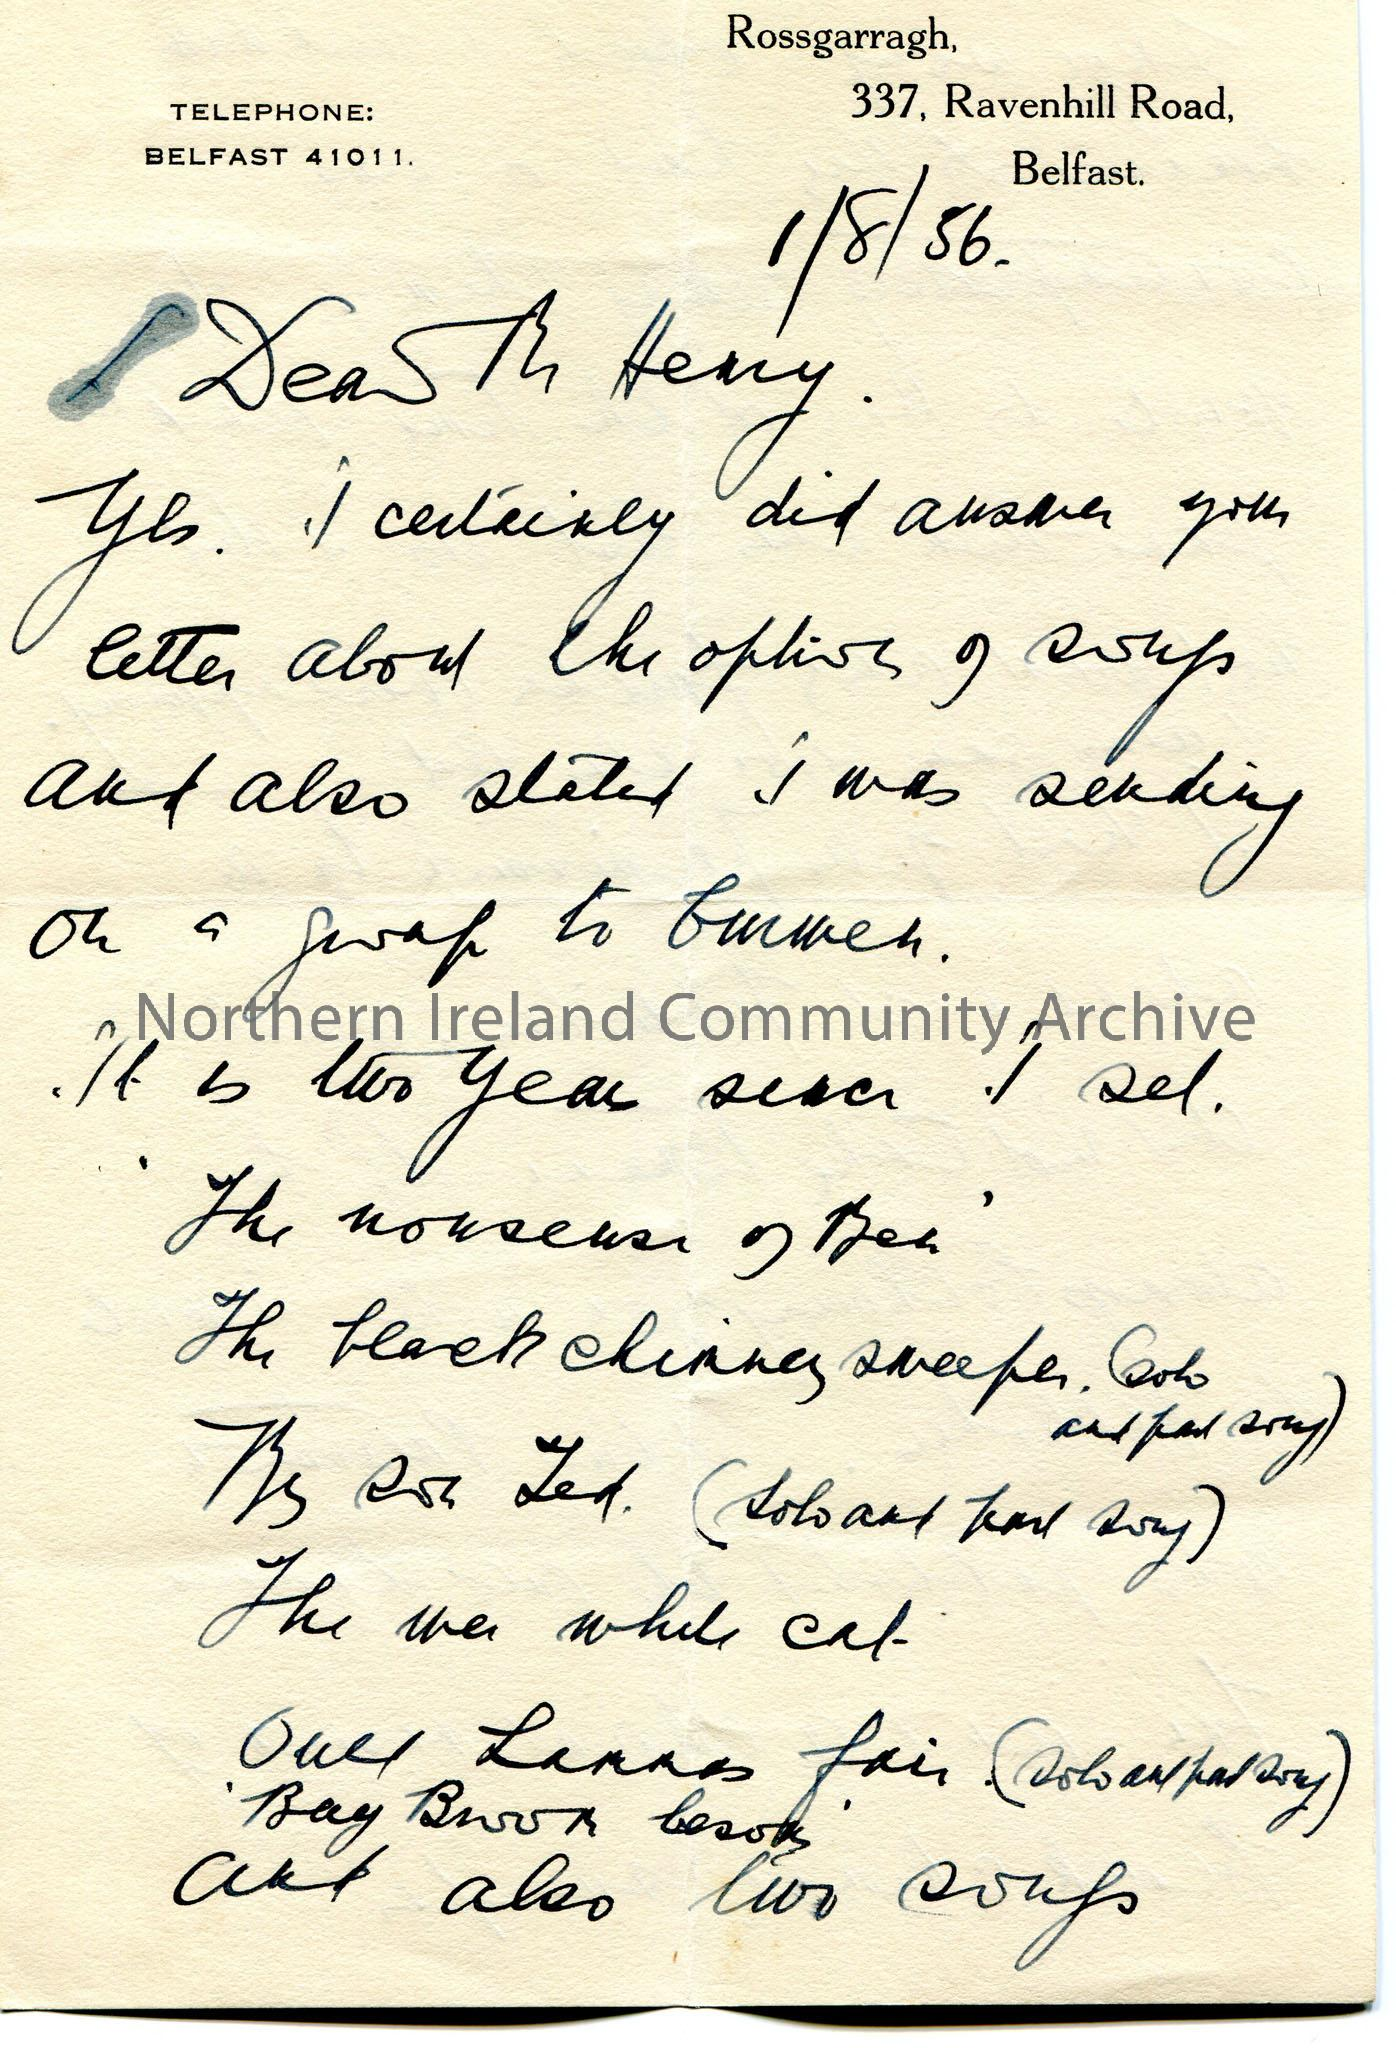 Page 1 of 5. Handwritten letter to Mr Henry. Appears to be contacting publishers re music arrangements of songs given by Sam. Recalls [Maurice] Jacobs…